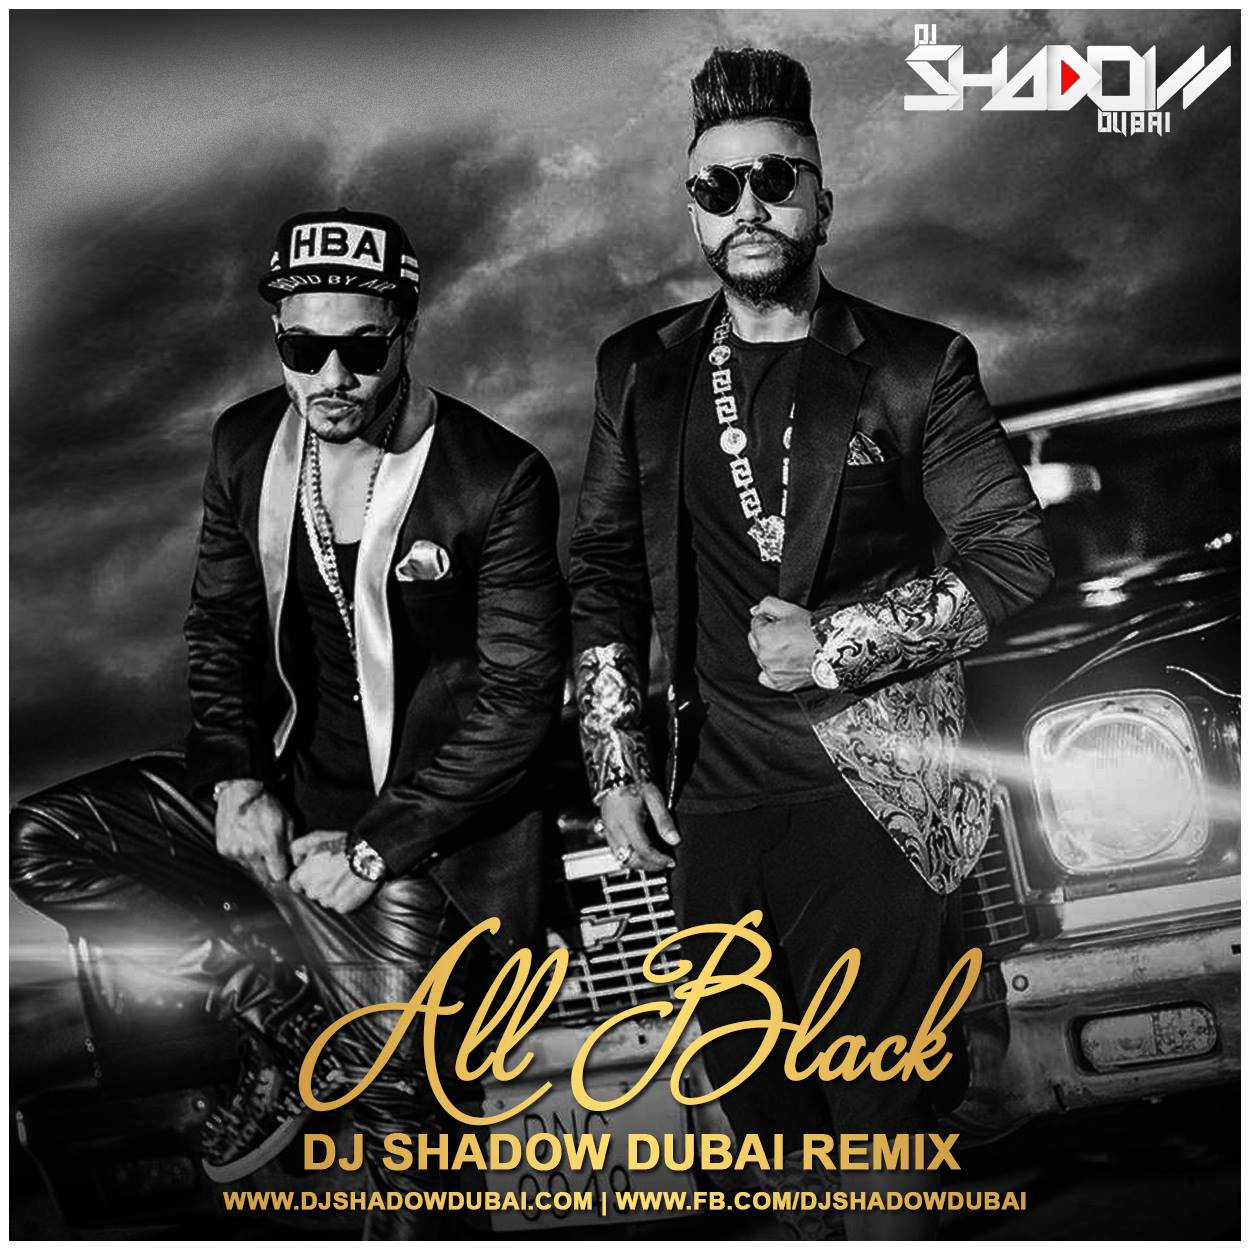 Deewani Mastani Dj Mix Sukhe Ft Raftaar All Black Dj Shadow Dubai